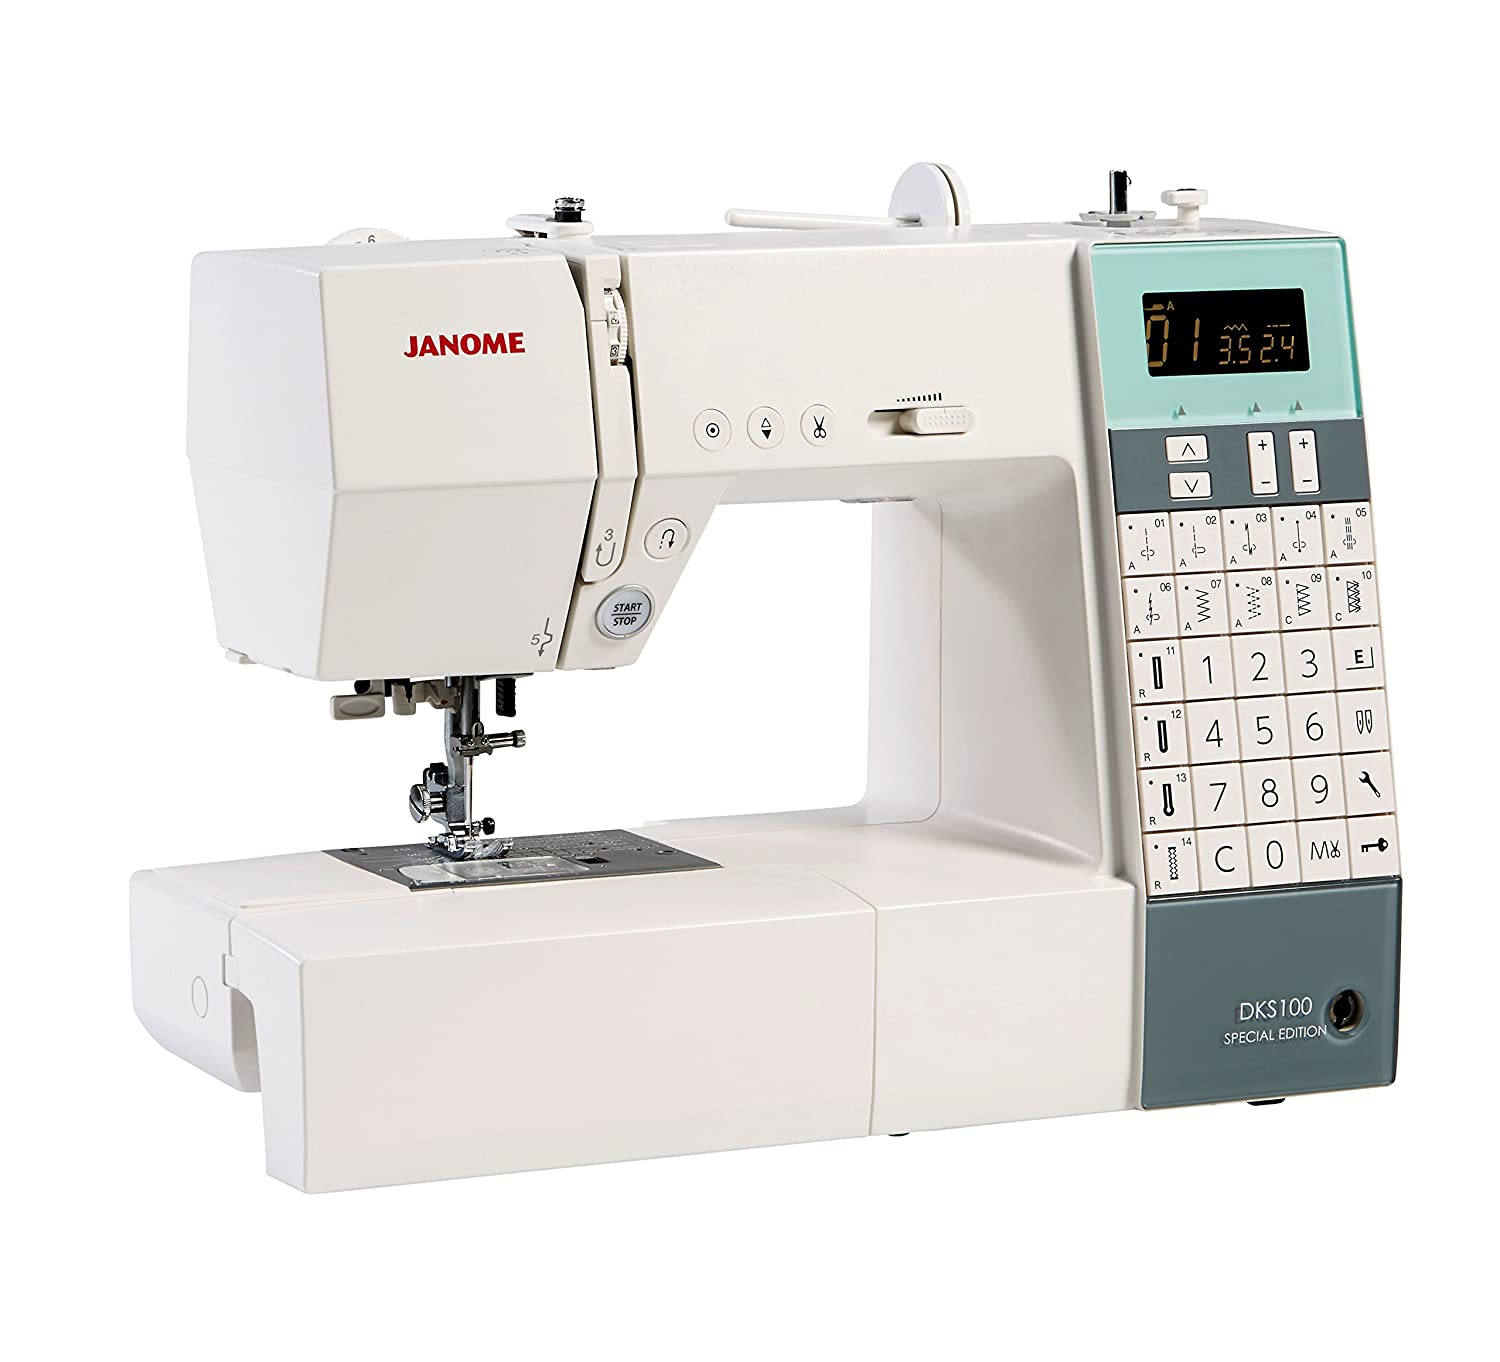 buyjanome com craft online quilt quilting at janome main lewis memory john machine sewing johnlewis rsp pdp